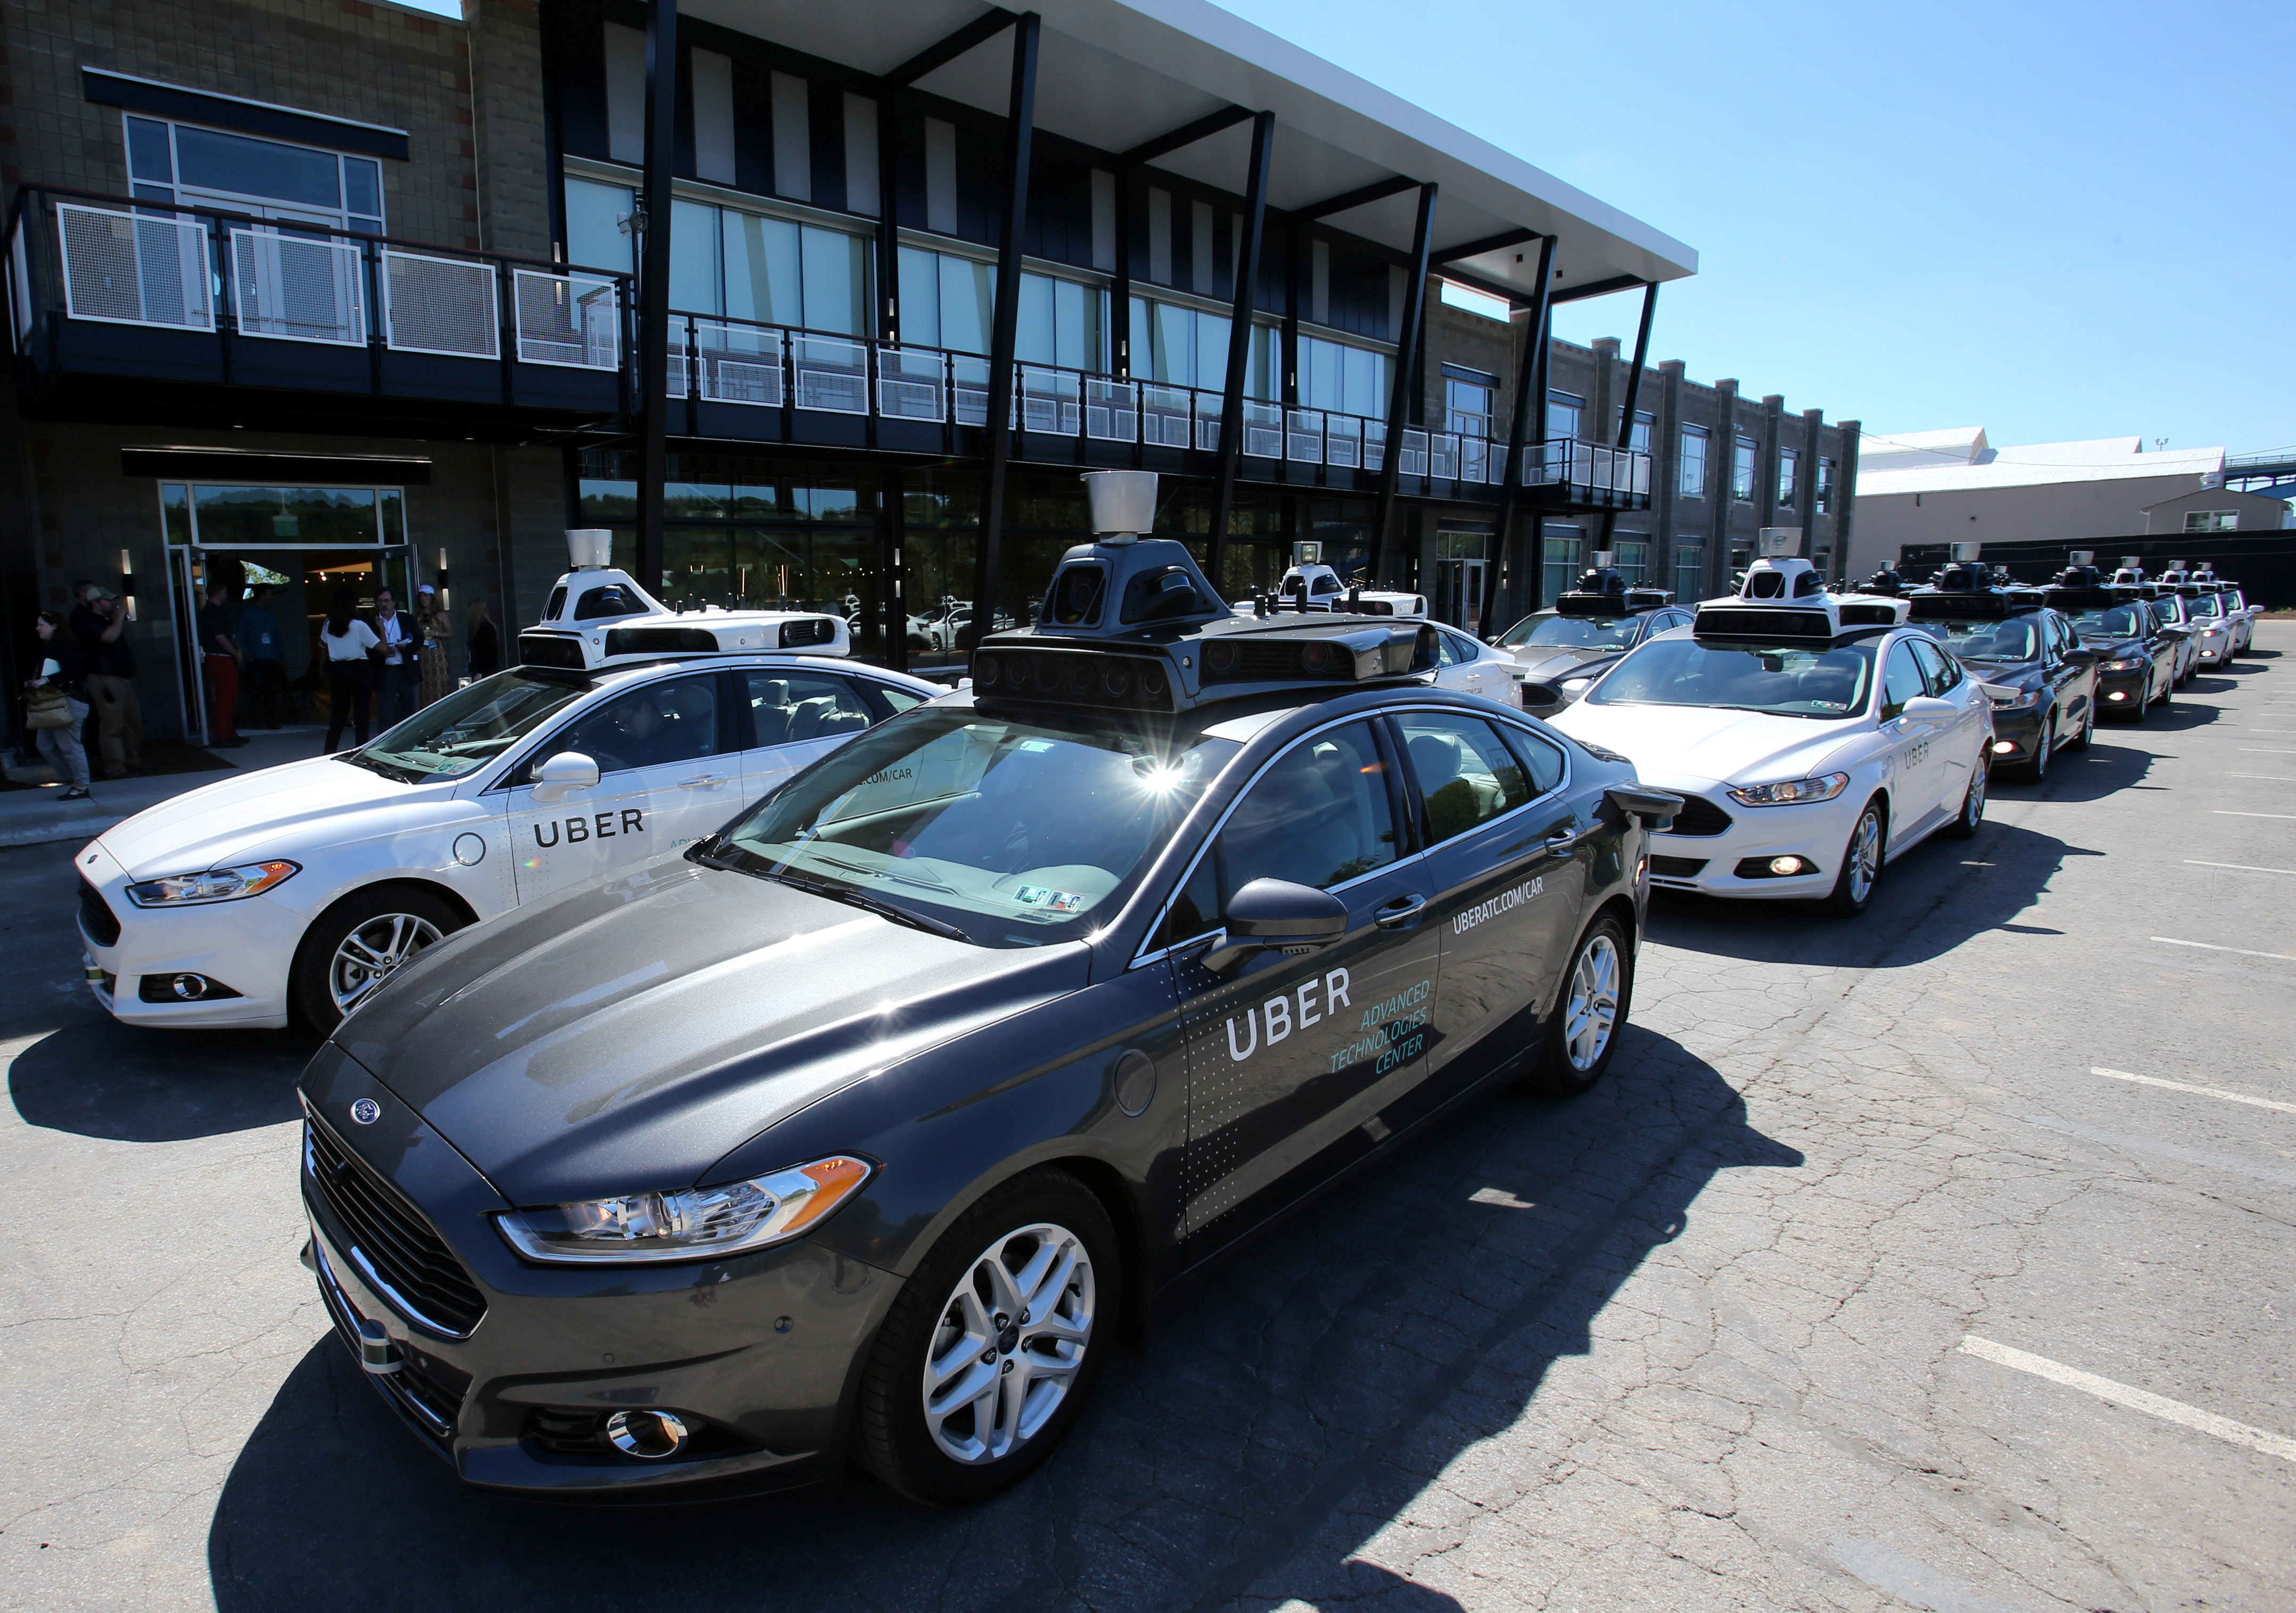 Photo of Uber's Ford Fusion self-driving cars